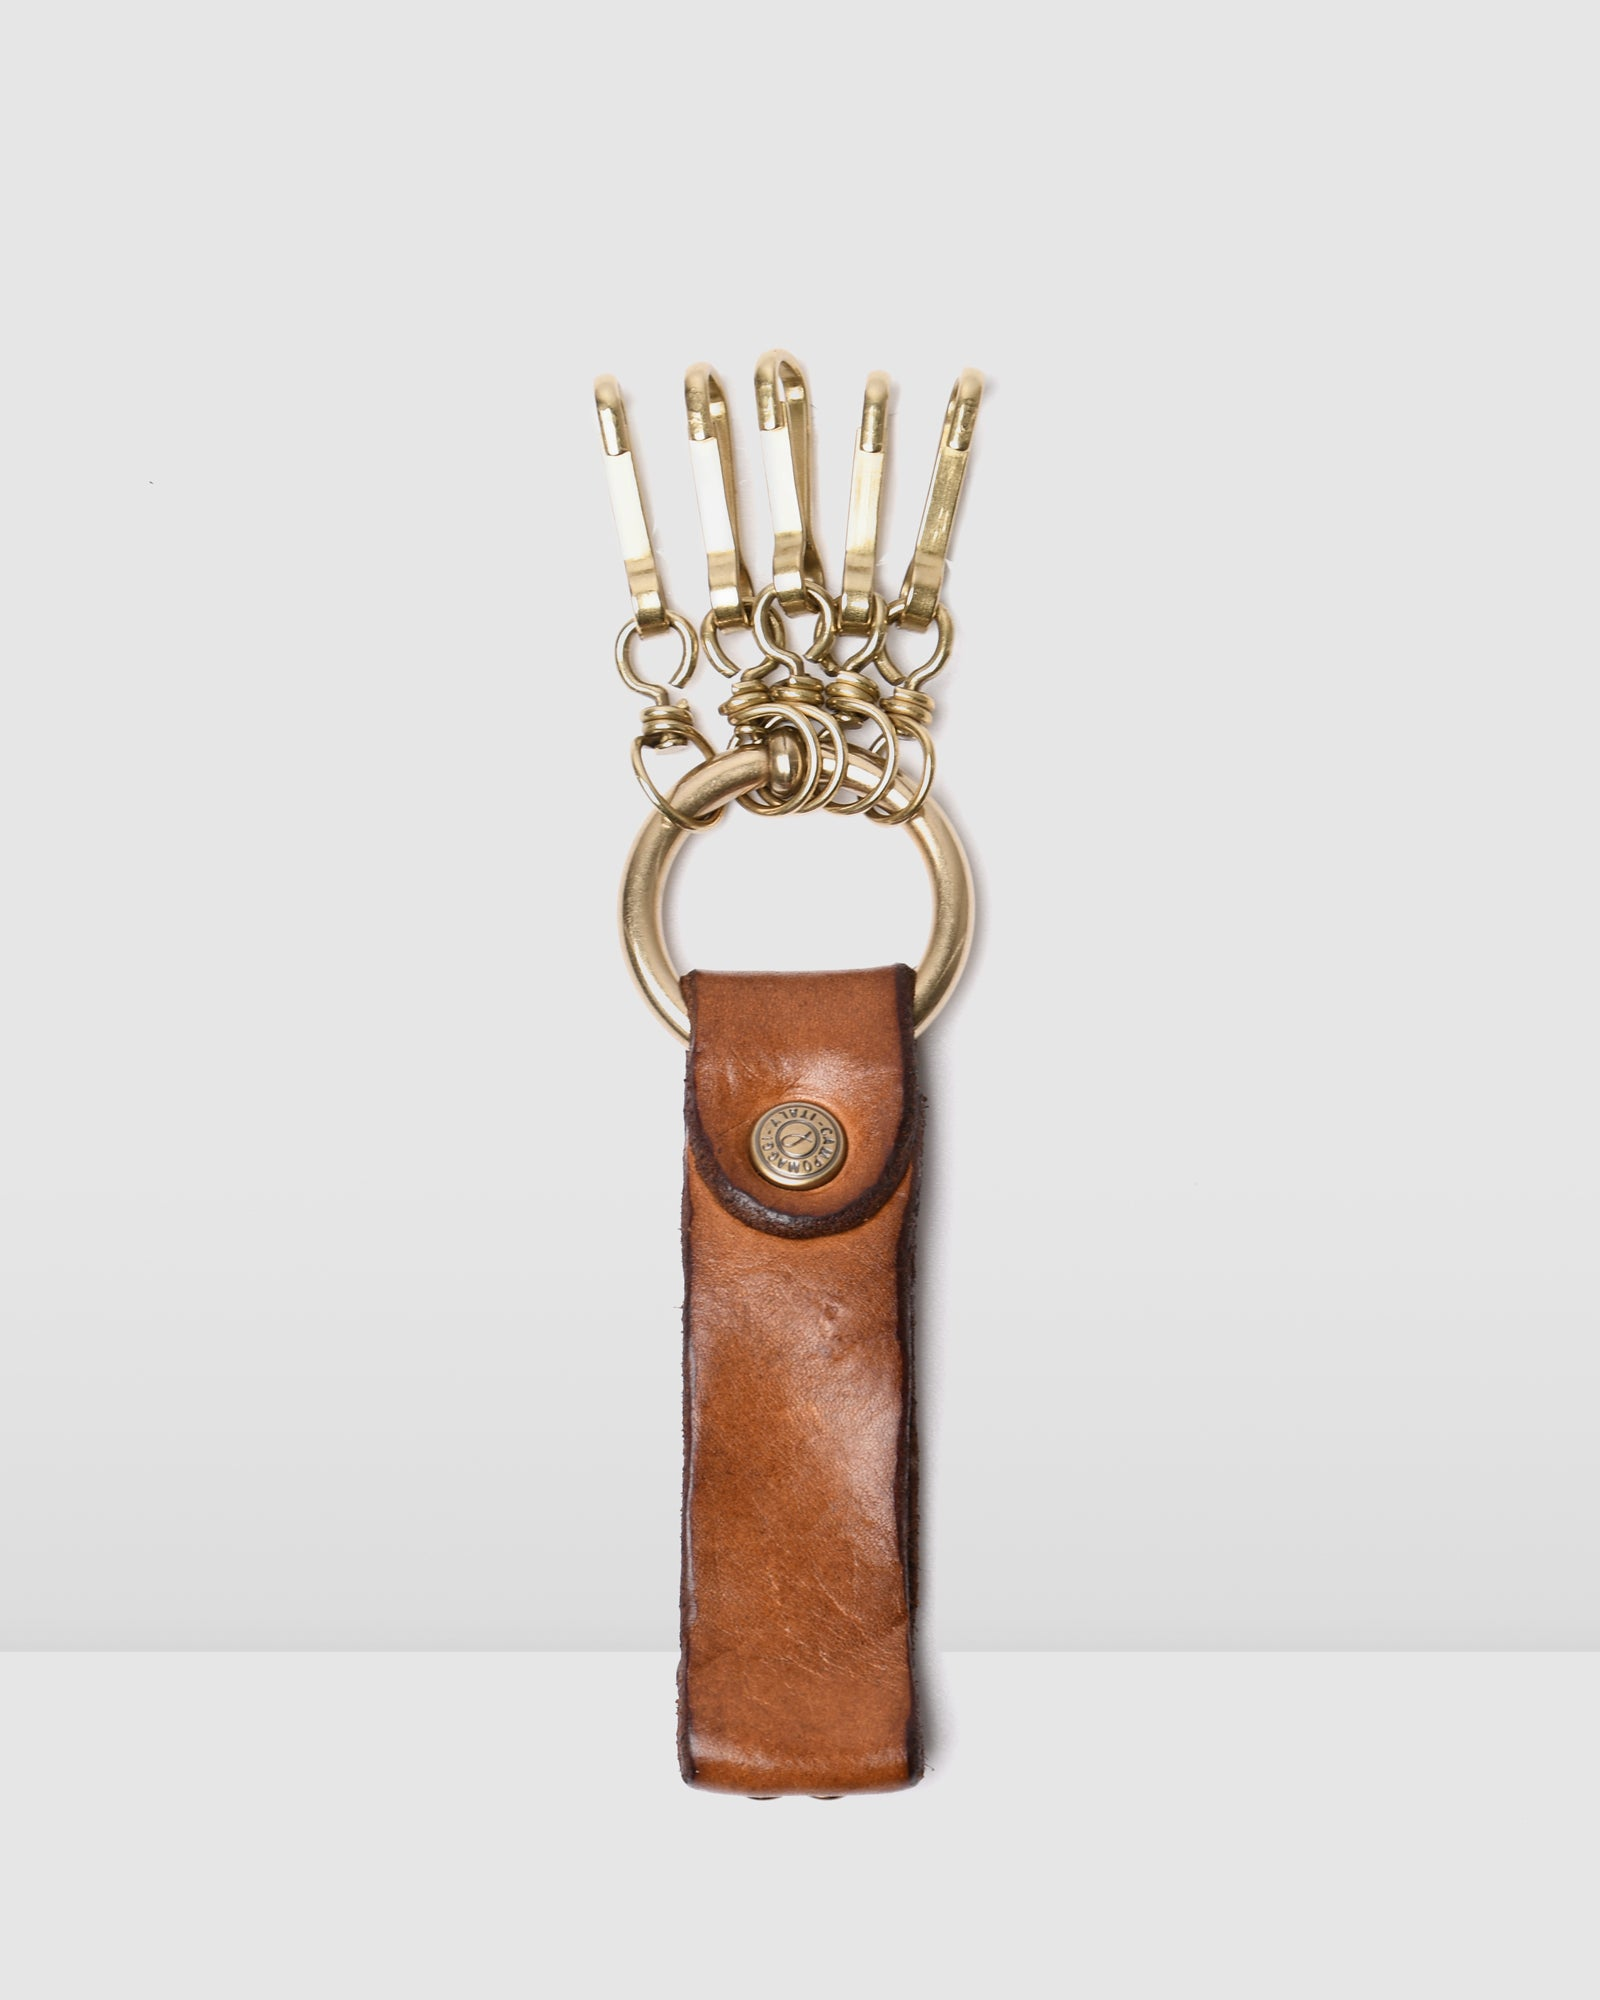 CAMPOMAGGI BELLA DI NOTTE KEYRING COGNAC LEATHER